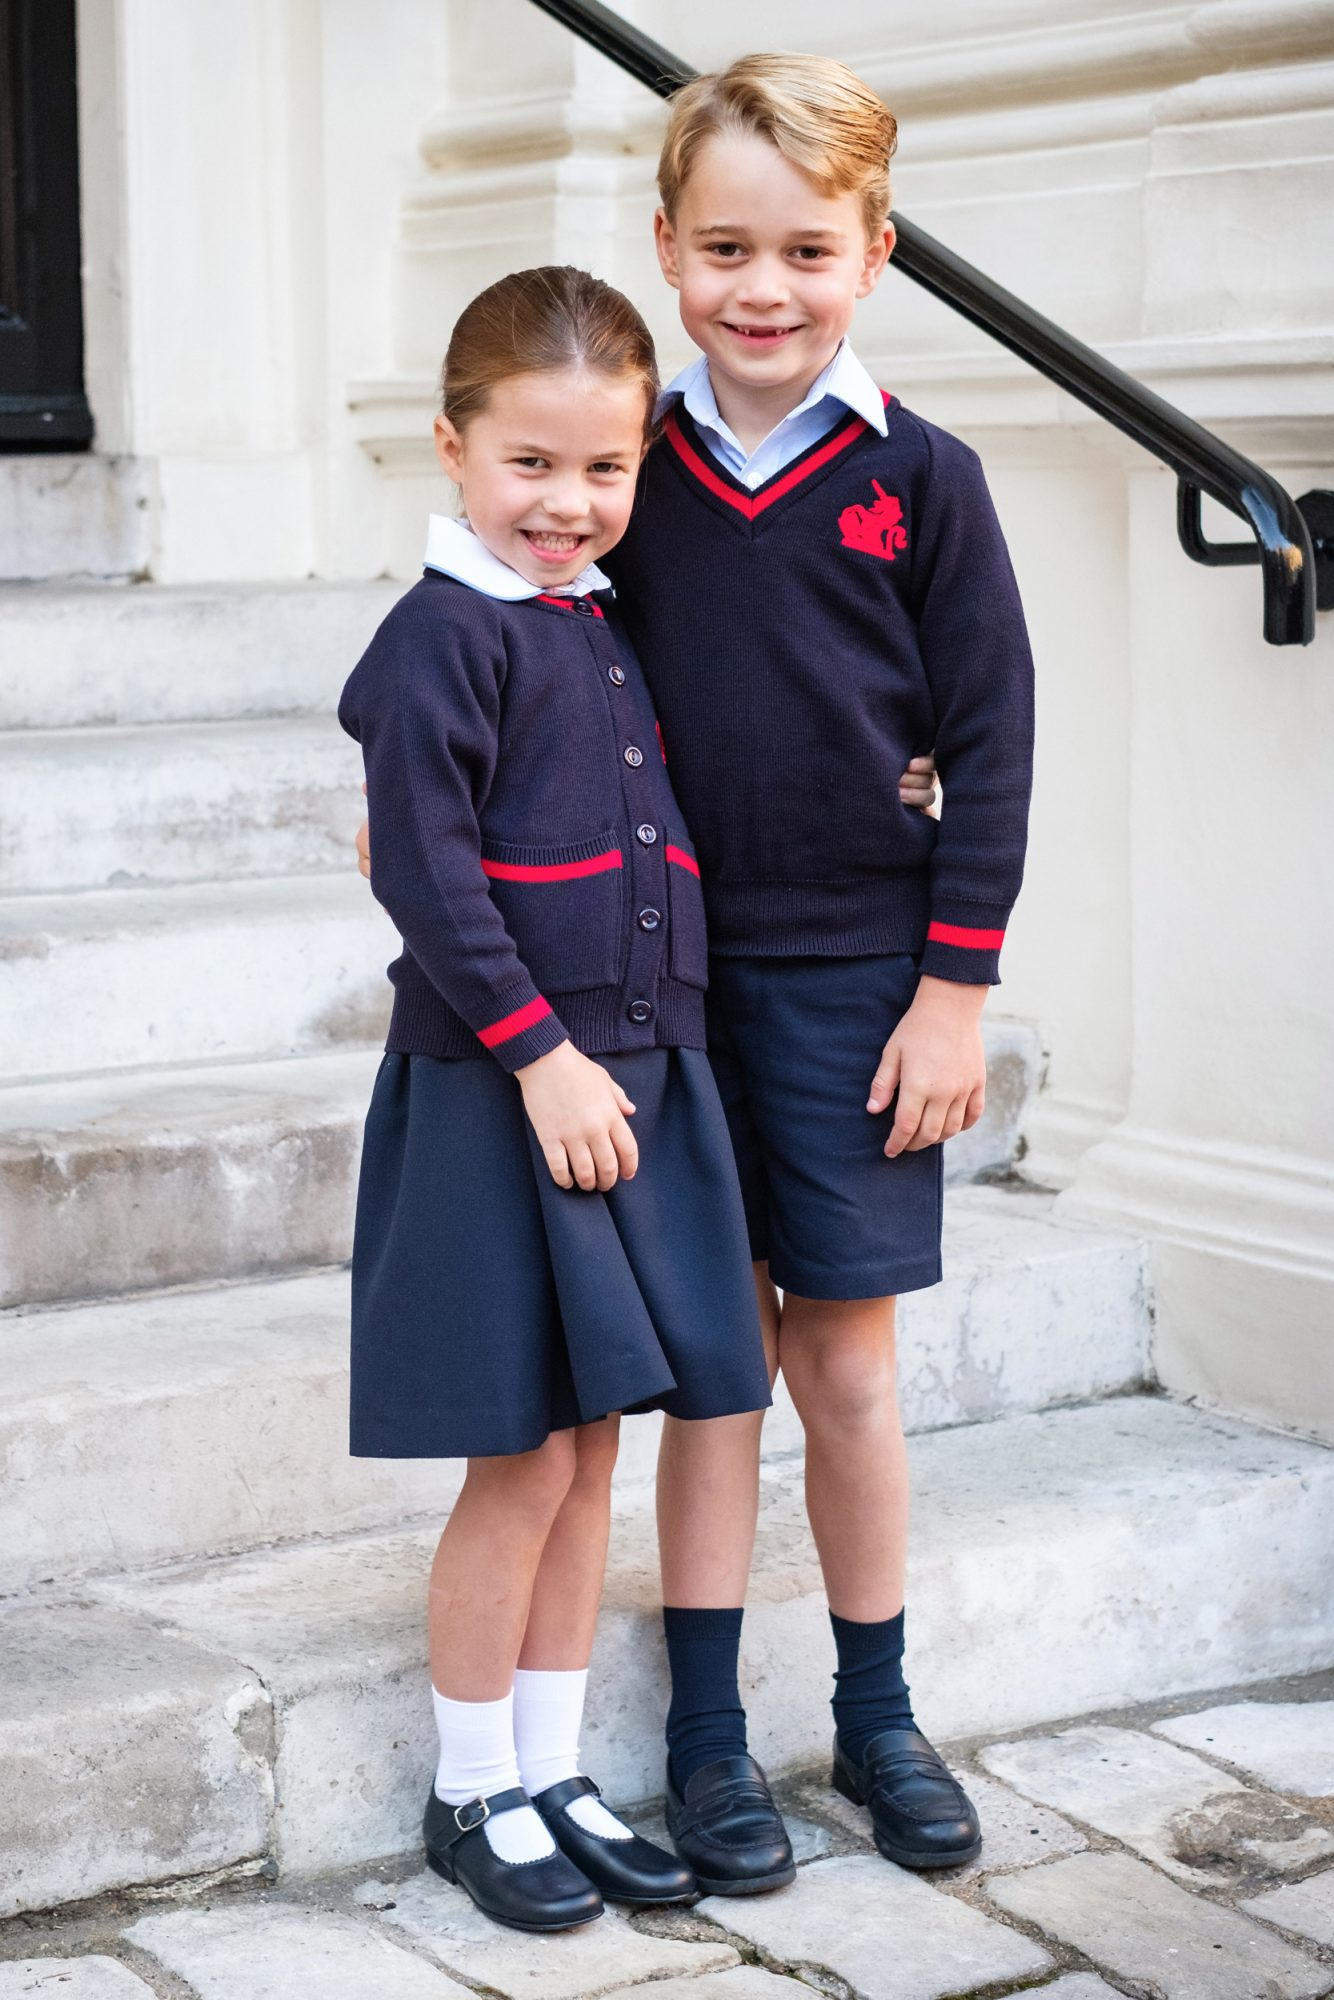 Office at Kensington Palace. Handout photo released by the Duke and Duchess of Cambridge of Prince George and Princess Charlotte at Kensington Palace shortly before they left for Thomas's Battersea for her first day at the school